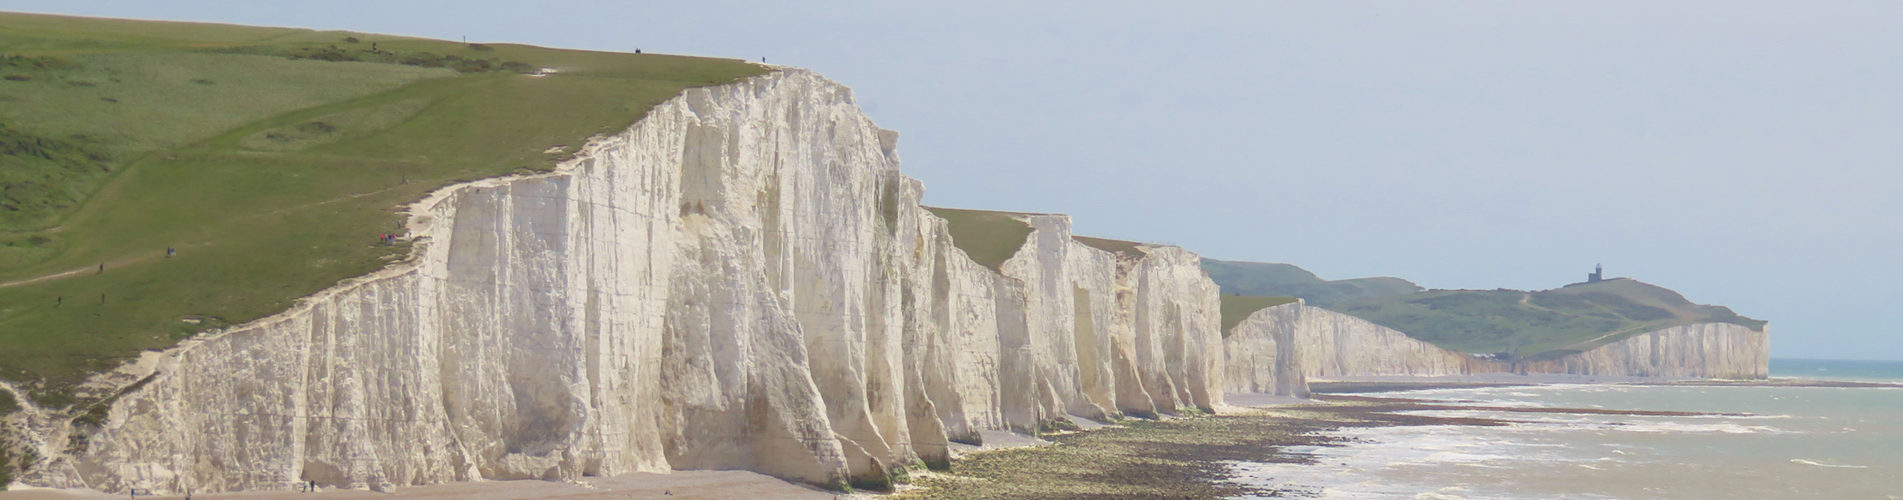 SELCS - Beachy Head